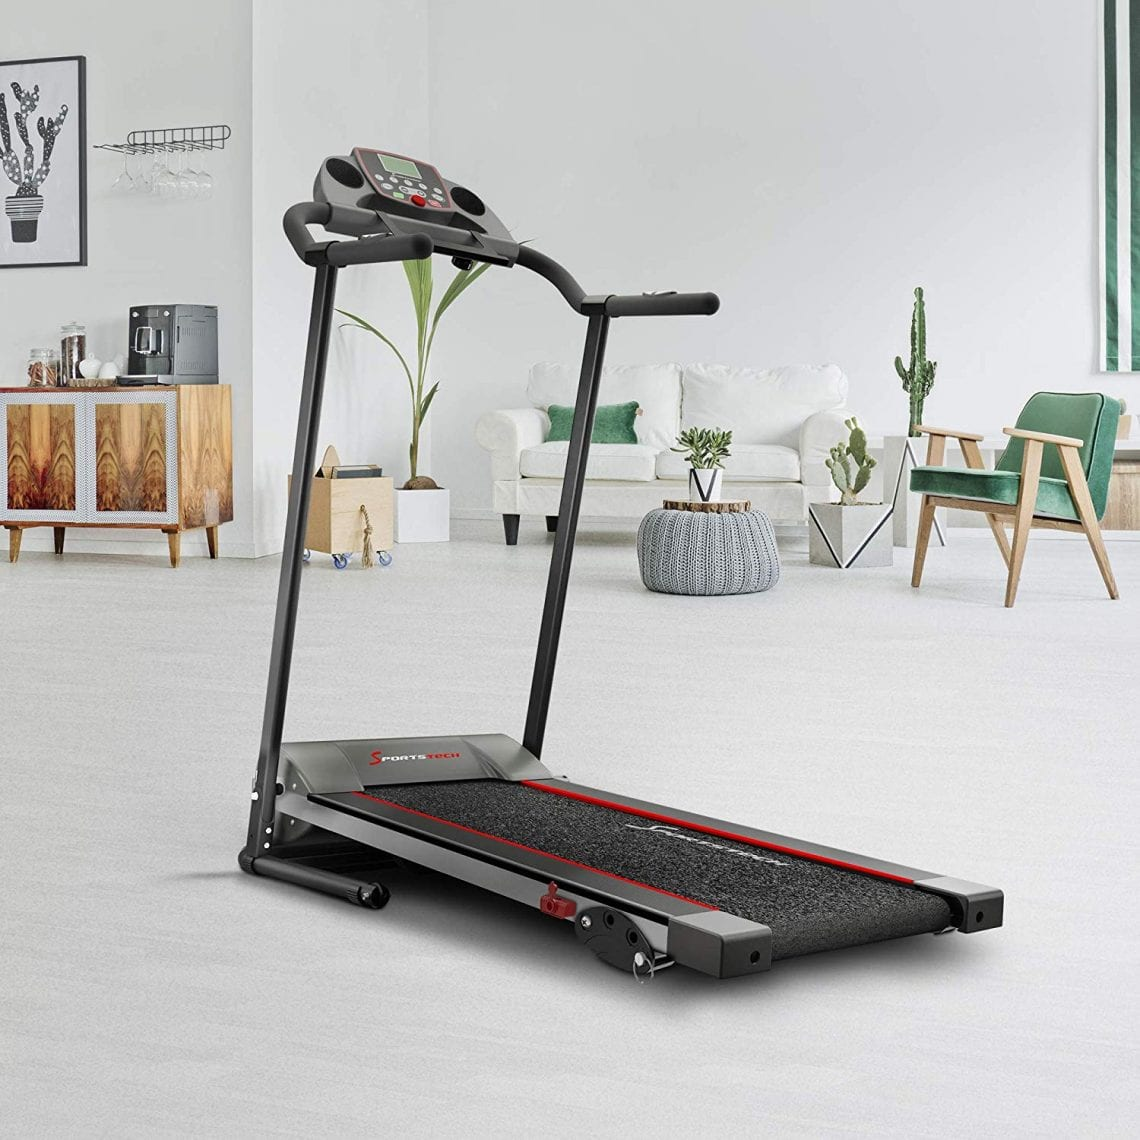 Tapis Course Nordictrack The Best Treadmill Comparison And Reviews Zone Led